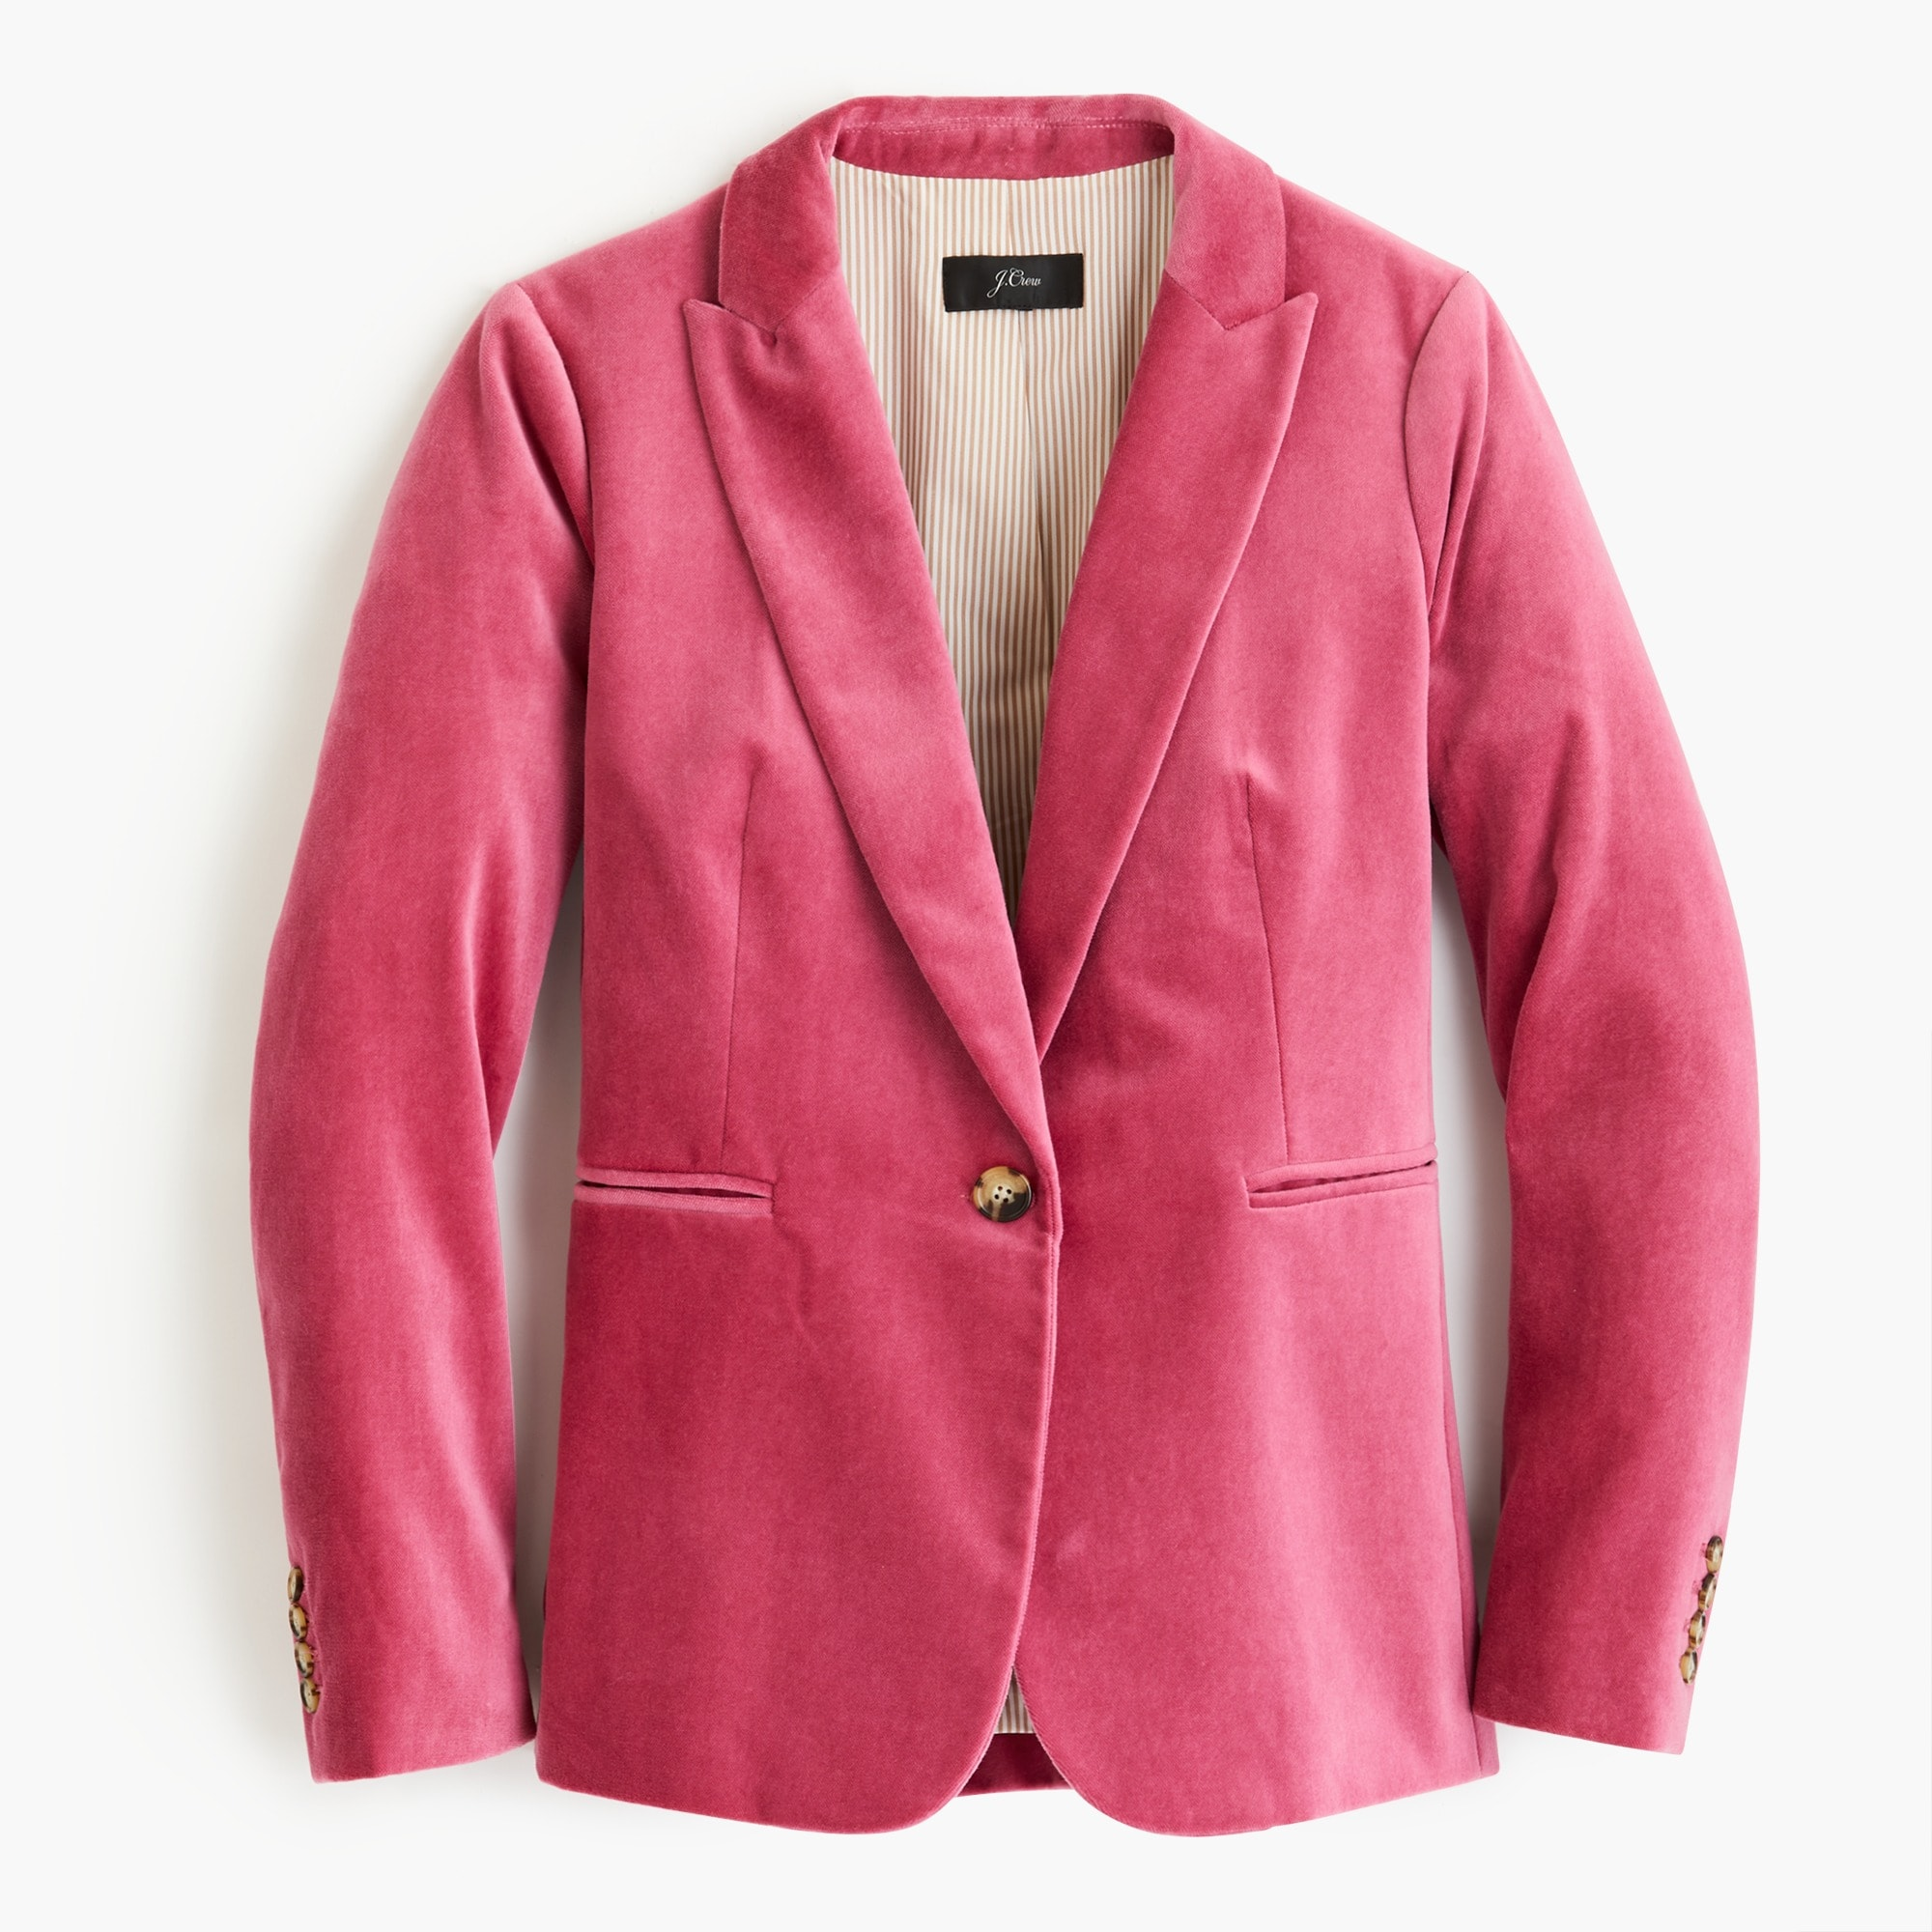 tall parke blazer in velvet : women single breasted